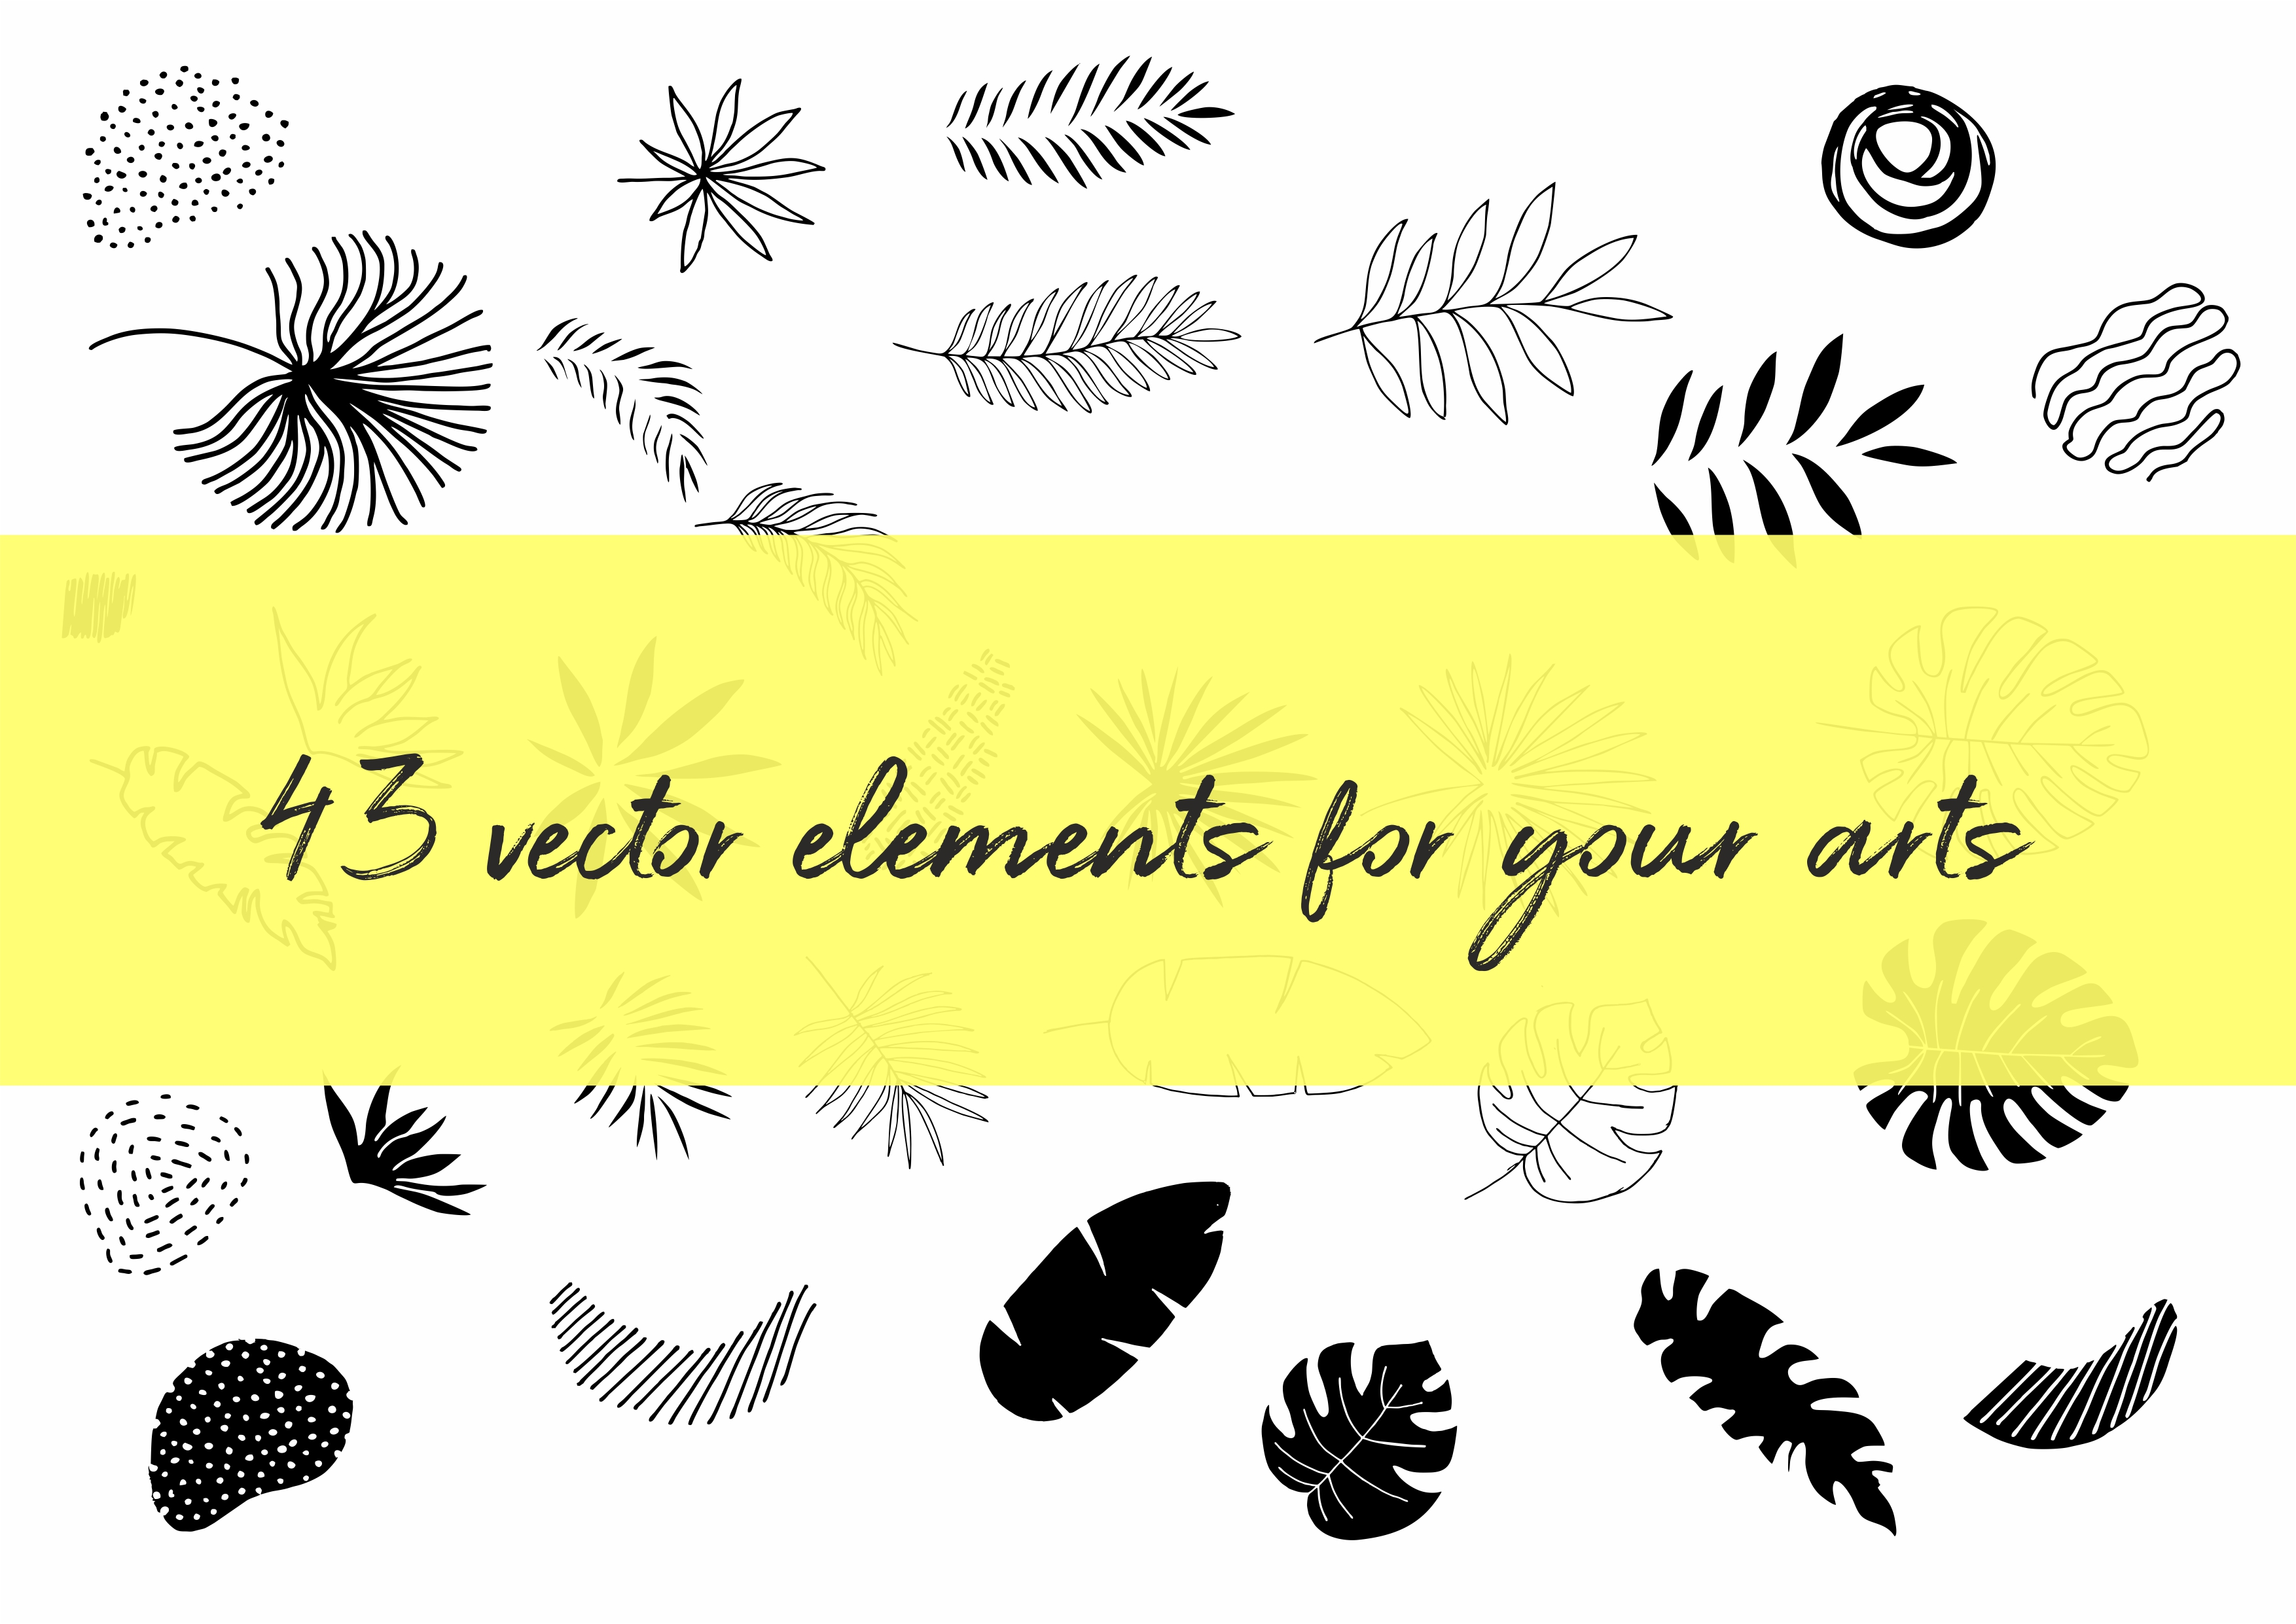 Hide in tropical leaves! Summer hand drawn patterns set example image 3